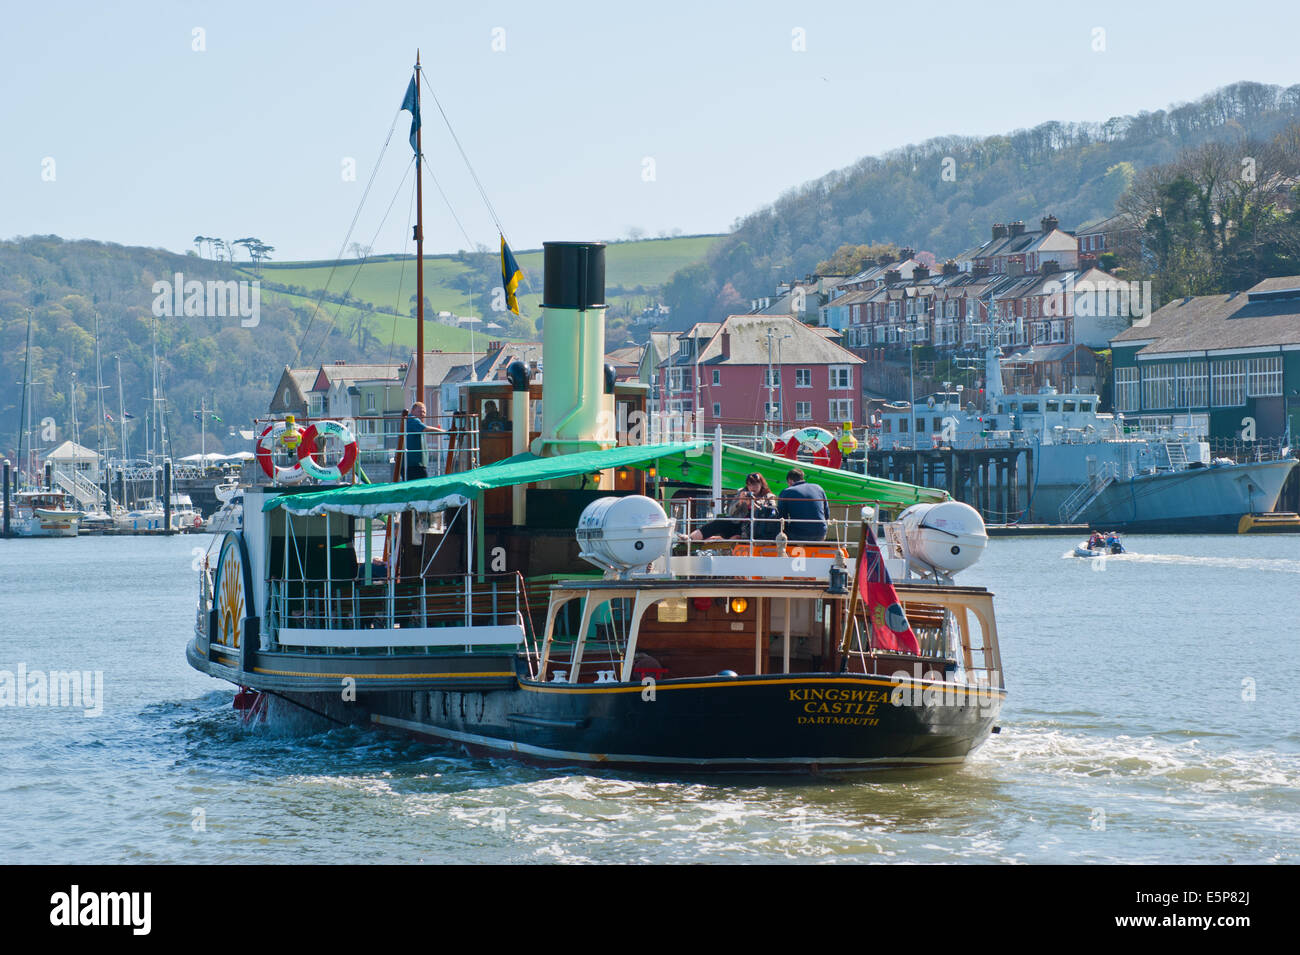 Steam Paddle Boat On The River Dart Devon England